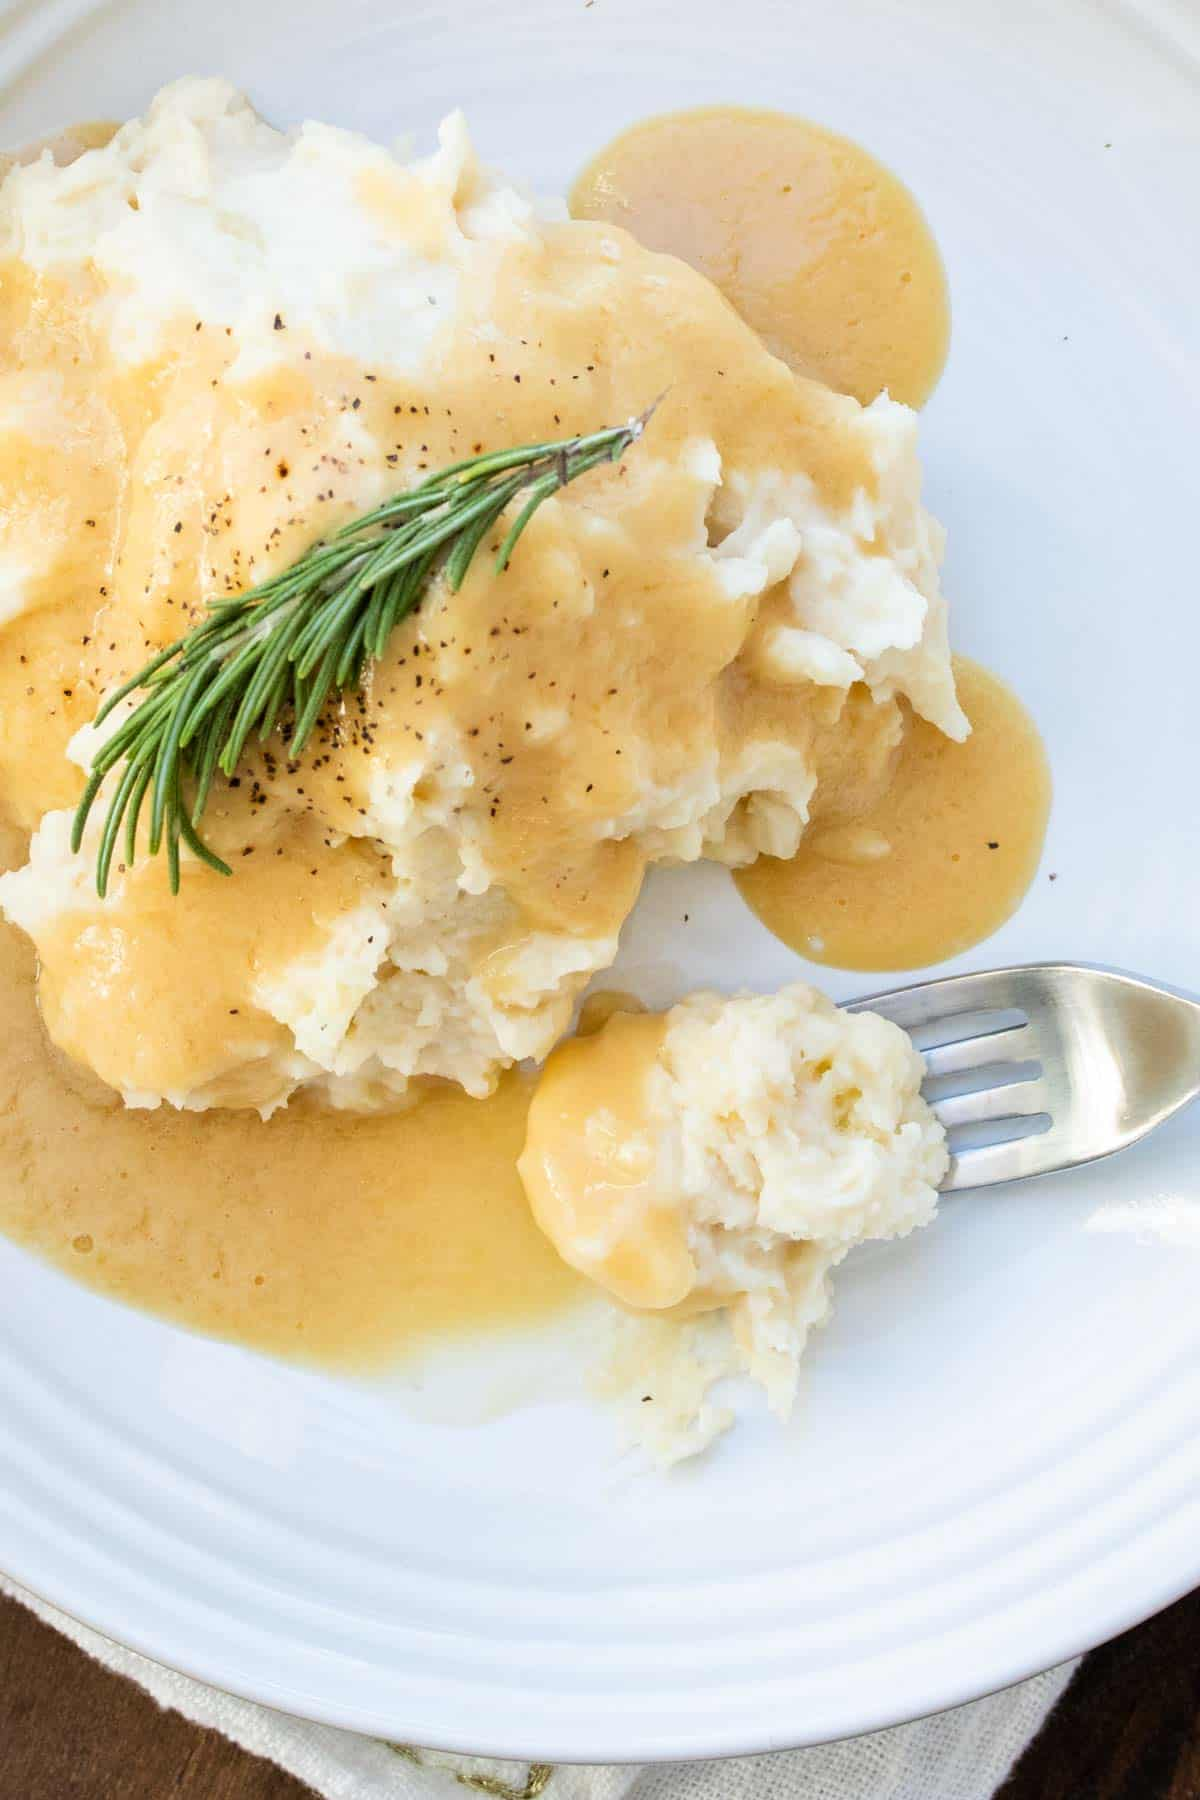 Fork getting a bite of gravy and mashed potatoes